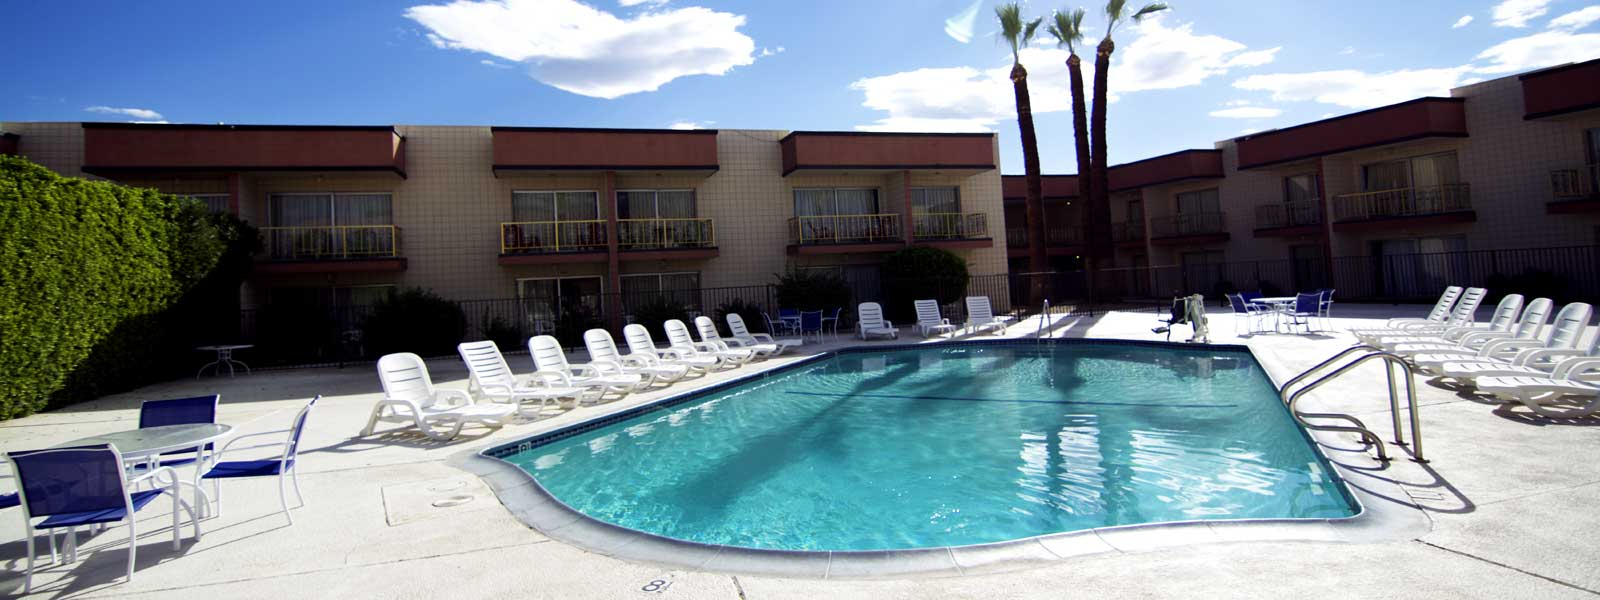 Hotels Motels In Indio Ca